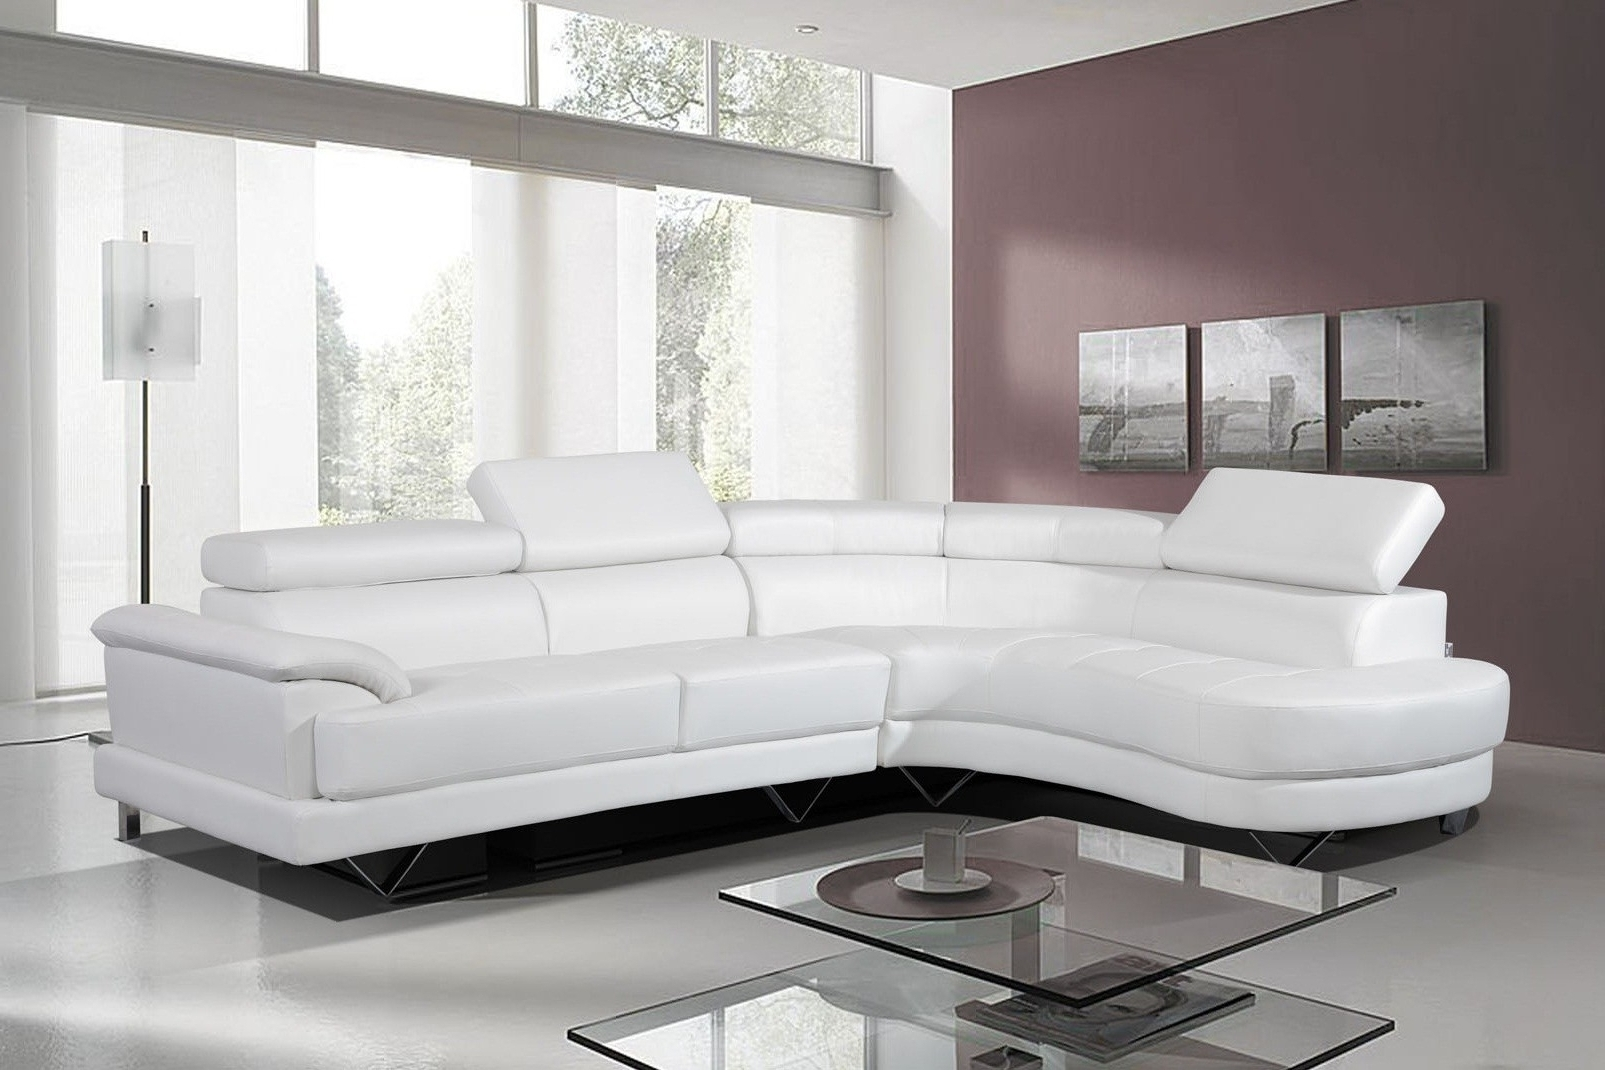 White Leather Corner Sofa Cheap | Catosfera.net